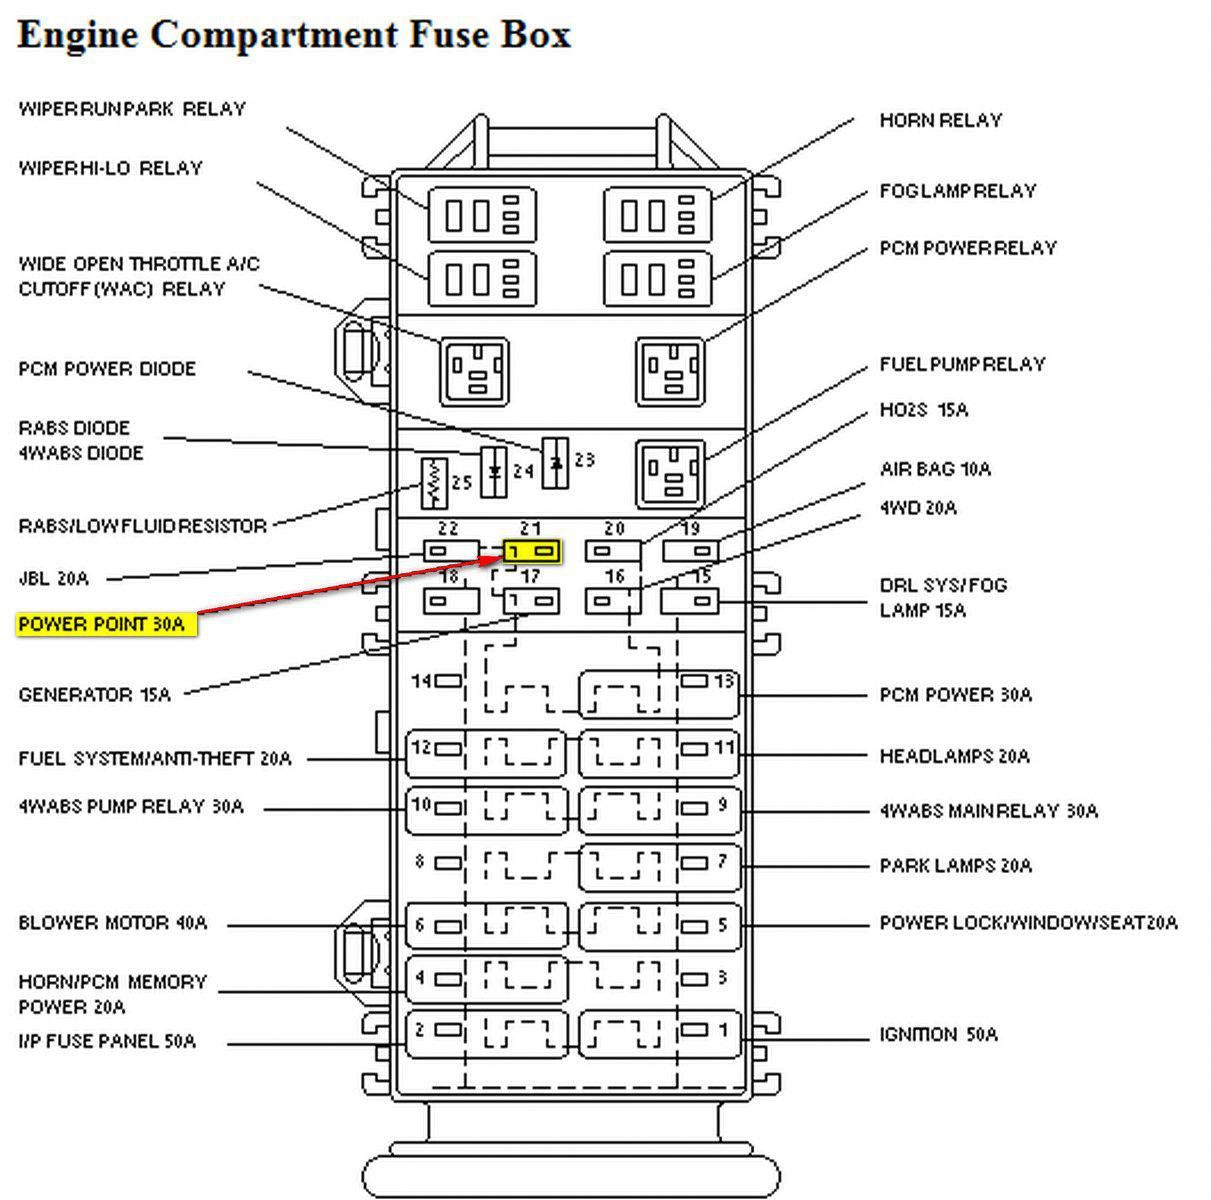 hight resolution of 97 ford fuse box blog wiring diagram 1997 ford f150 fuse box diagram under hood 1997 ford fuse box